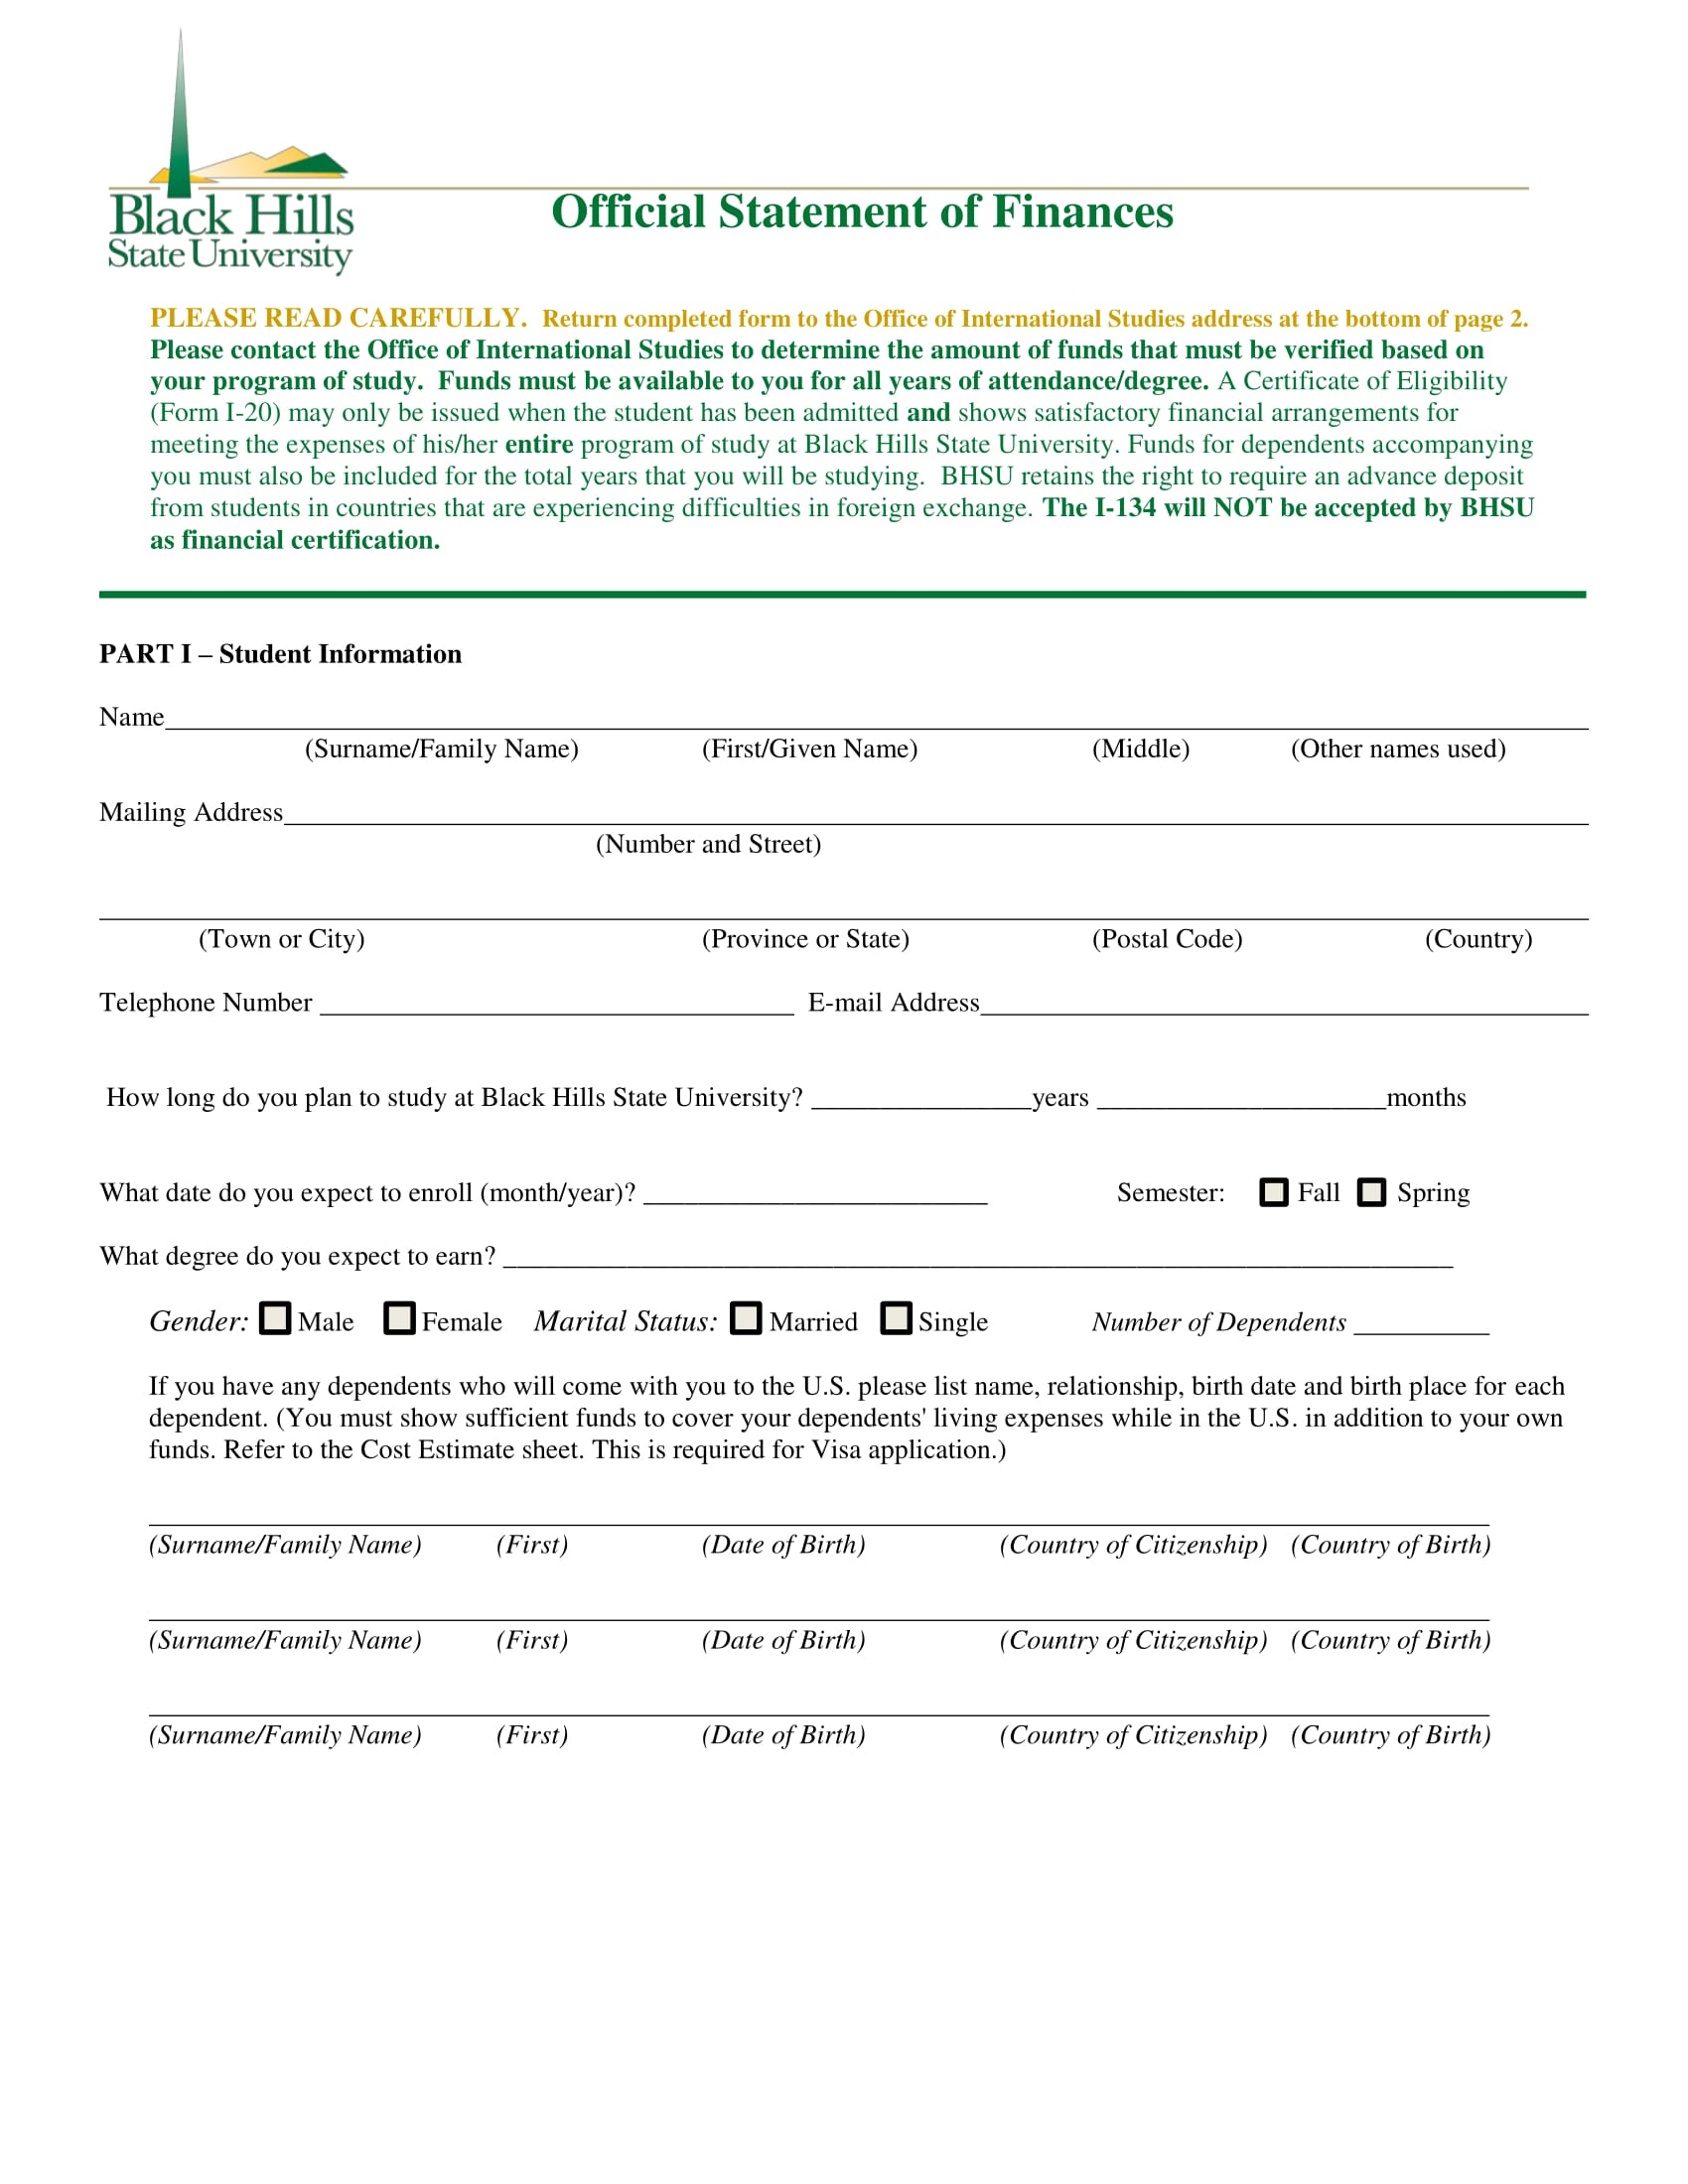 official statement of finances form 1